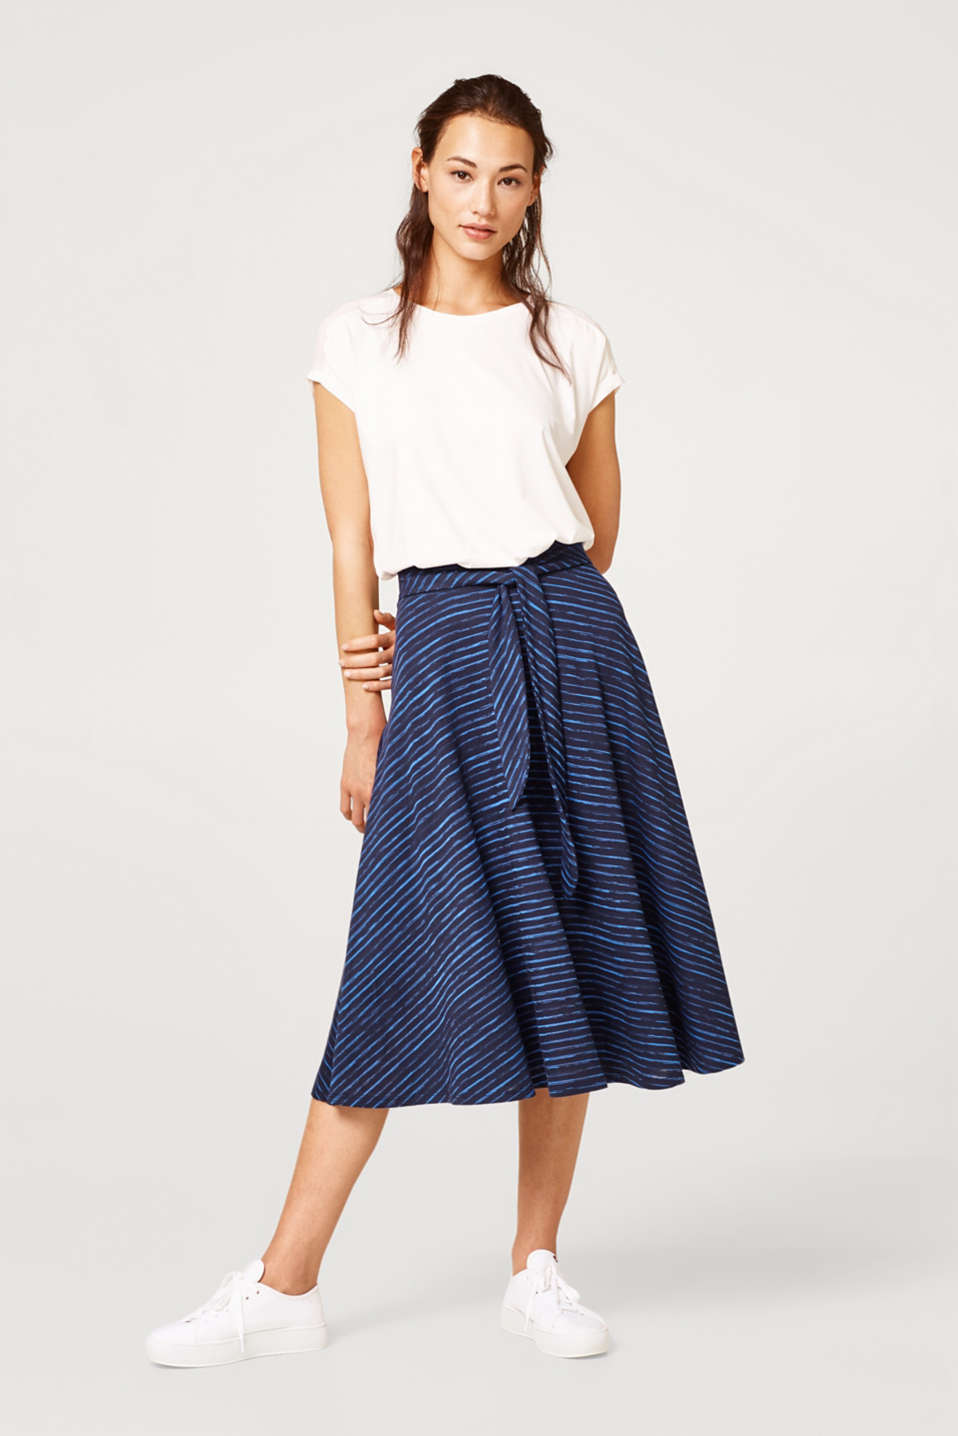 Striped A-line midi skirt made of jersey